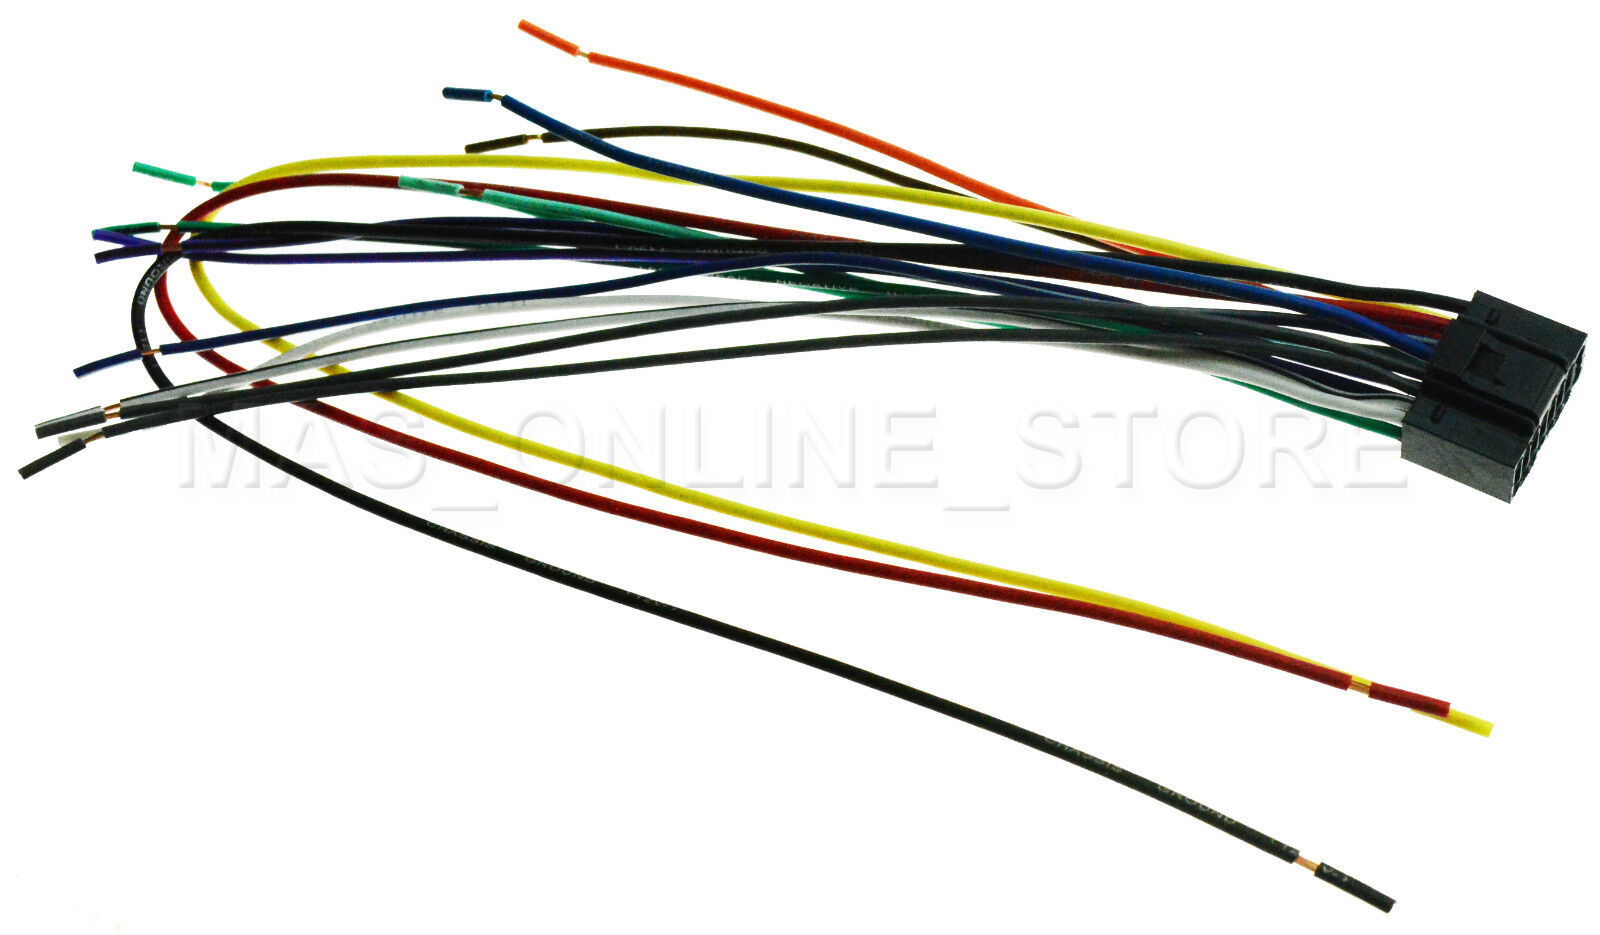 hight resolution of wire harness for kenwood dnx570hd dnx 570hd pay today ships today kenwood dnx570hd wiring harness